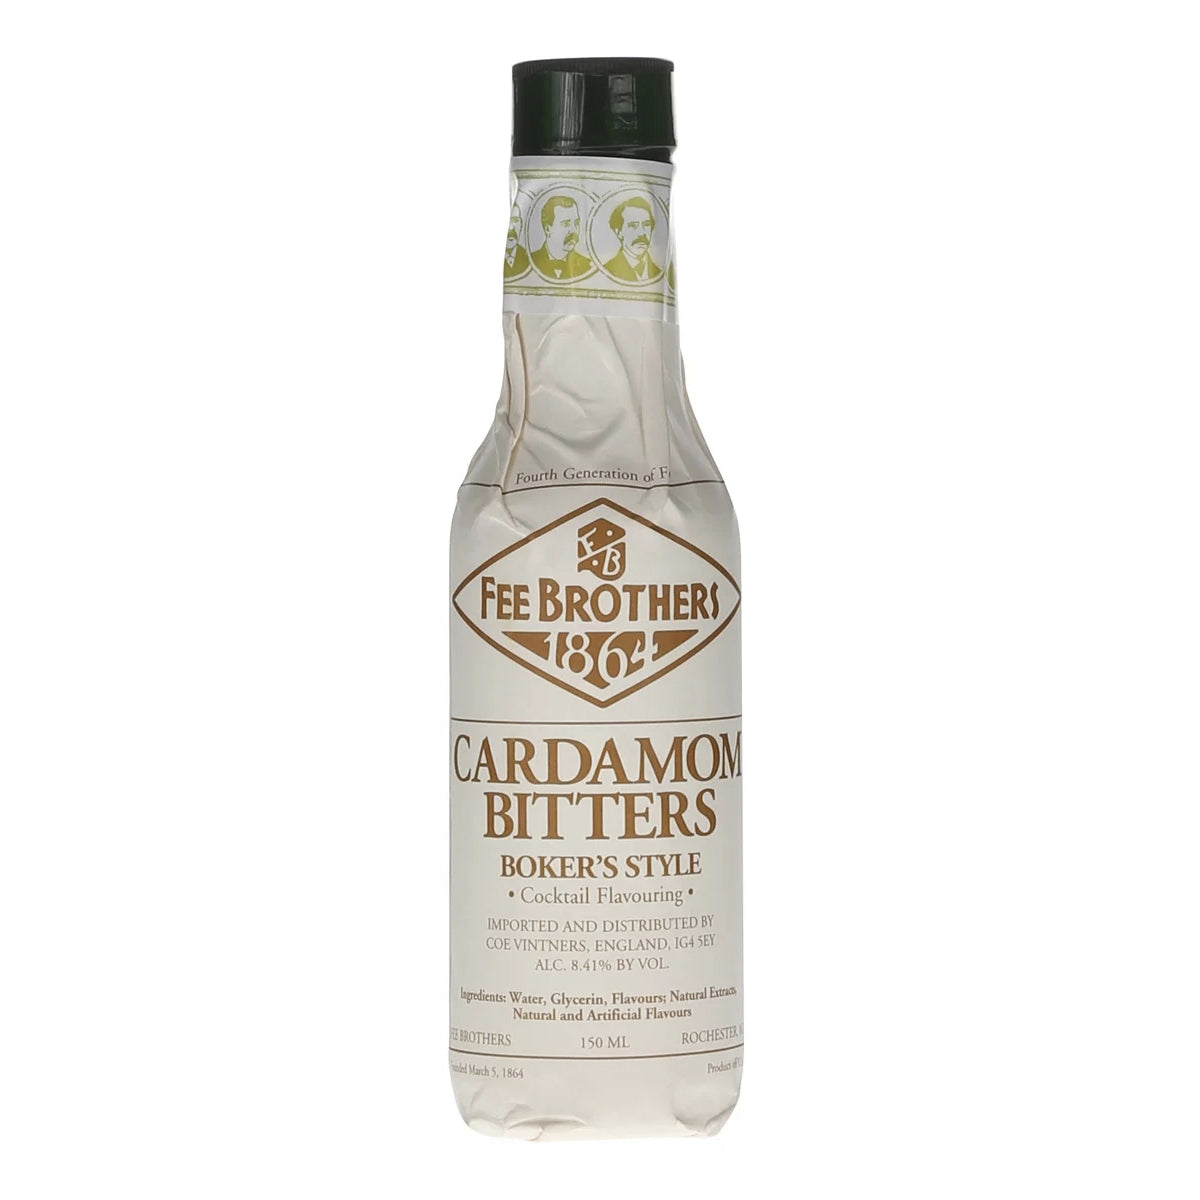 Fee Brothers Cardamom Bitters